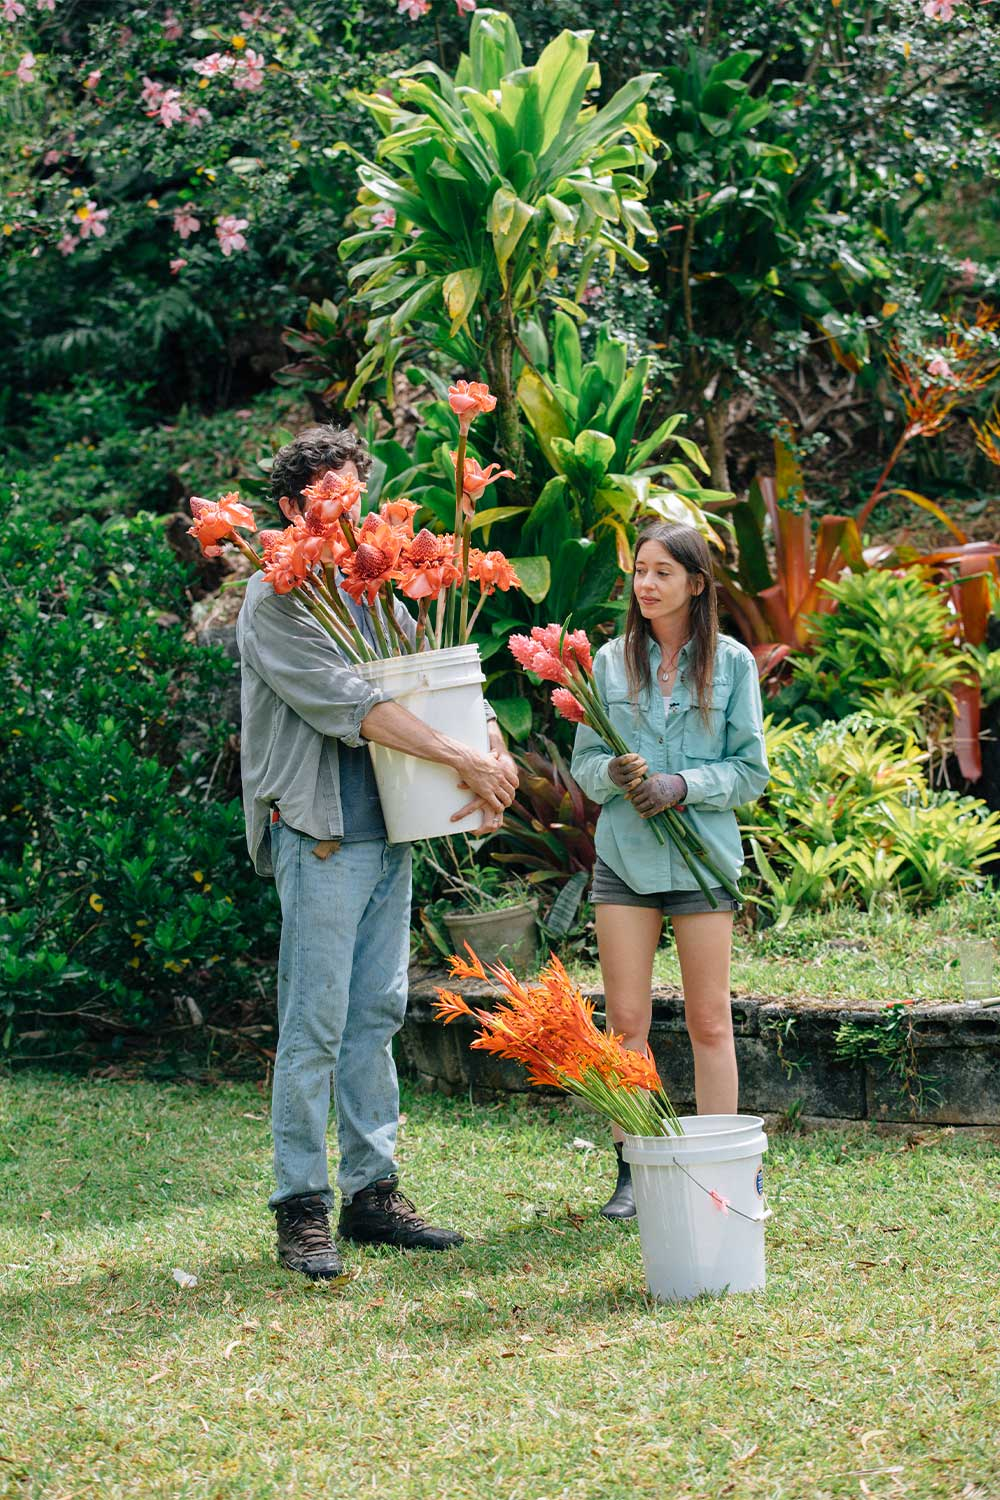 A man holding a bucket of flowers and woman placing in more flowers.